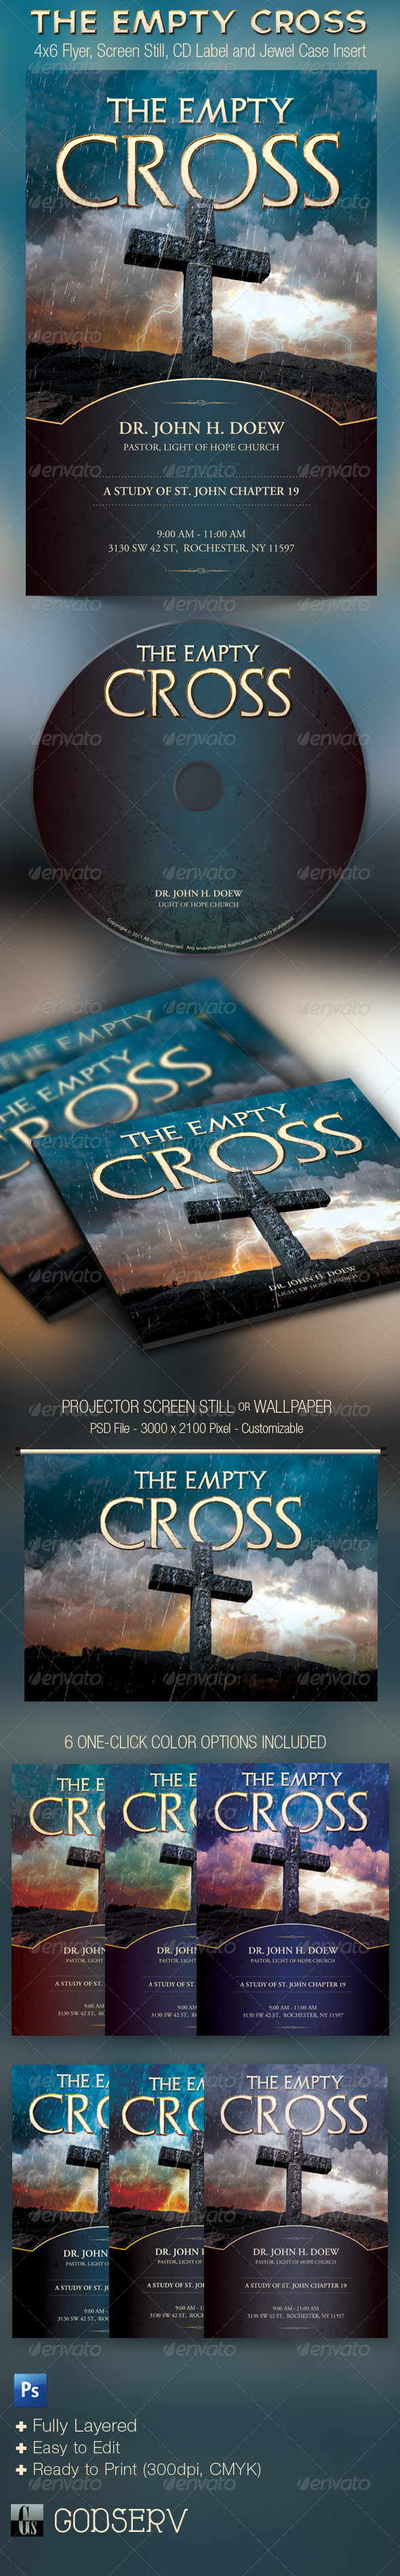 The Empty Cross Church Flyer, Slide and CD Template - Church Flyers